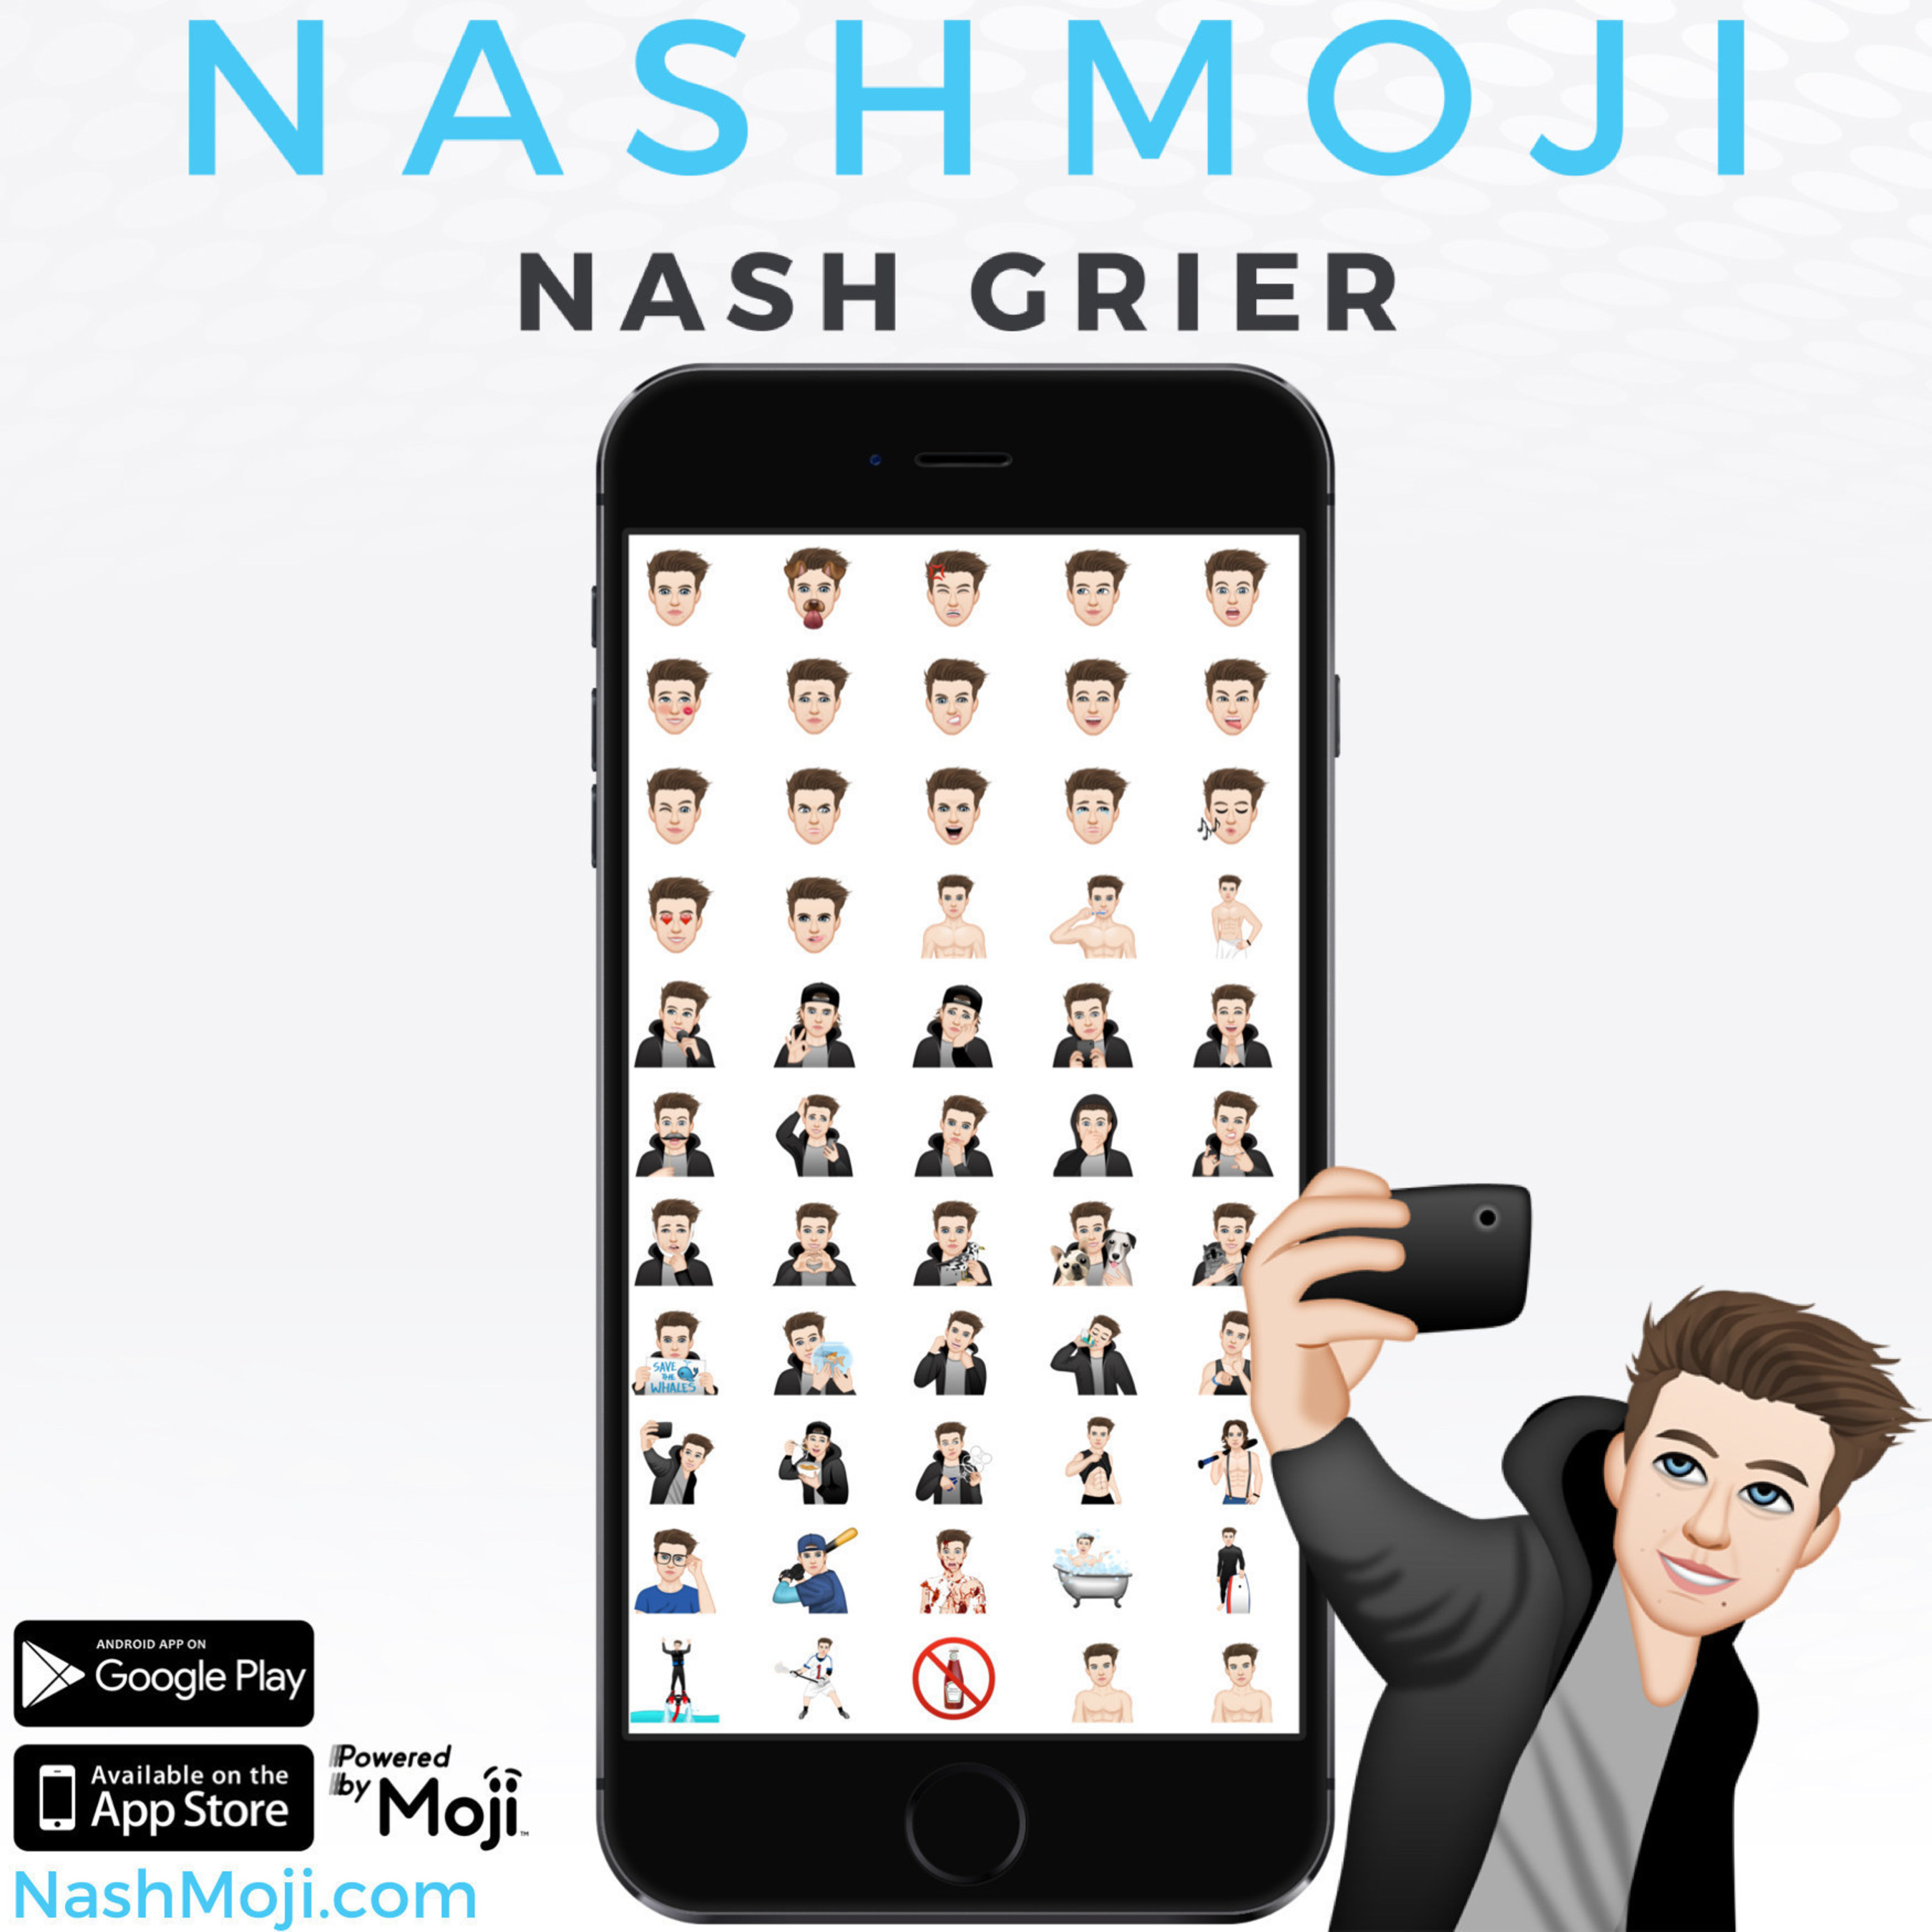 Nash Grier Introduces 'NashMoji' Emoji App, Available Now In The Apple App Store